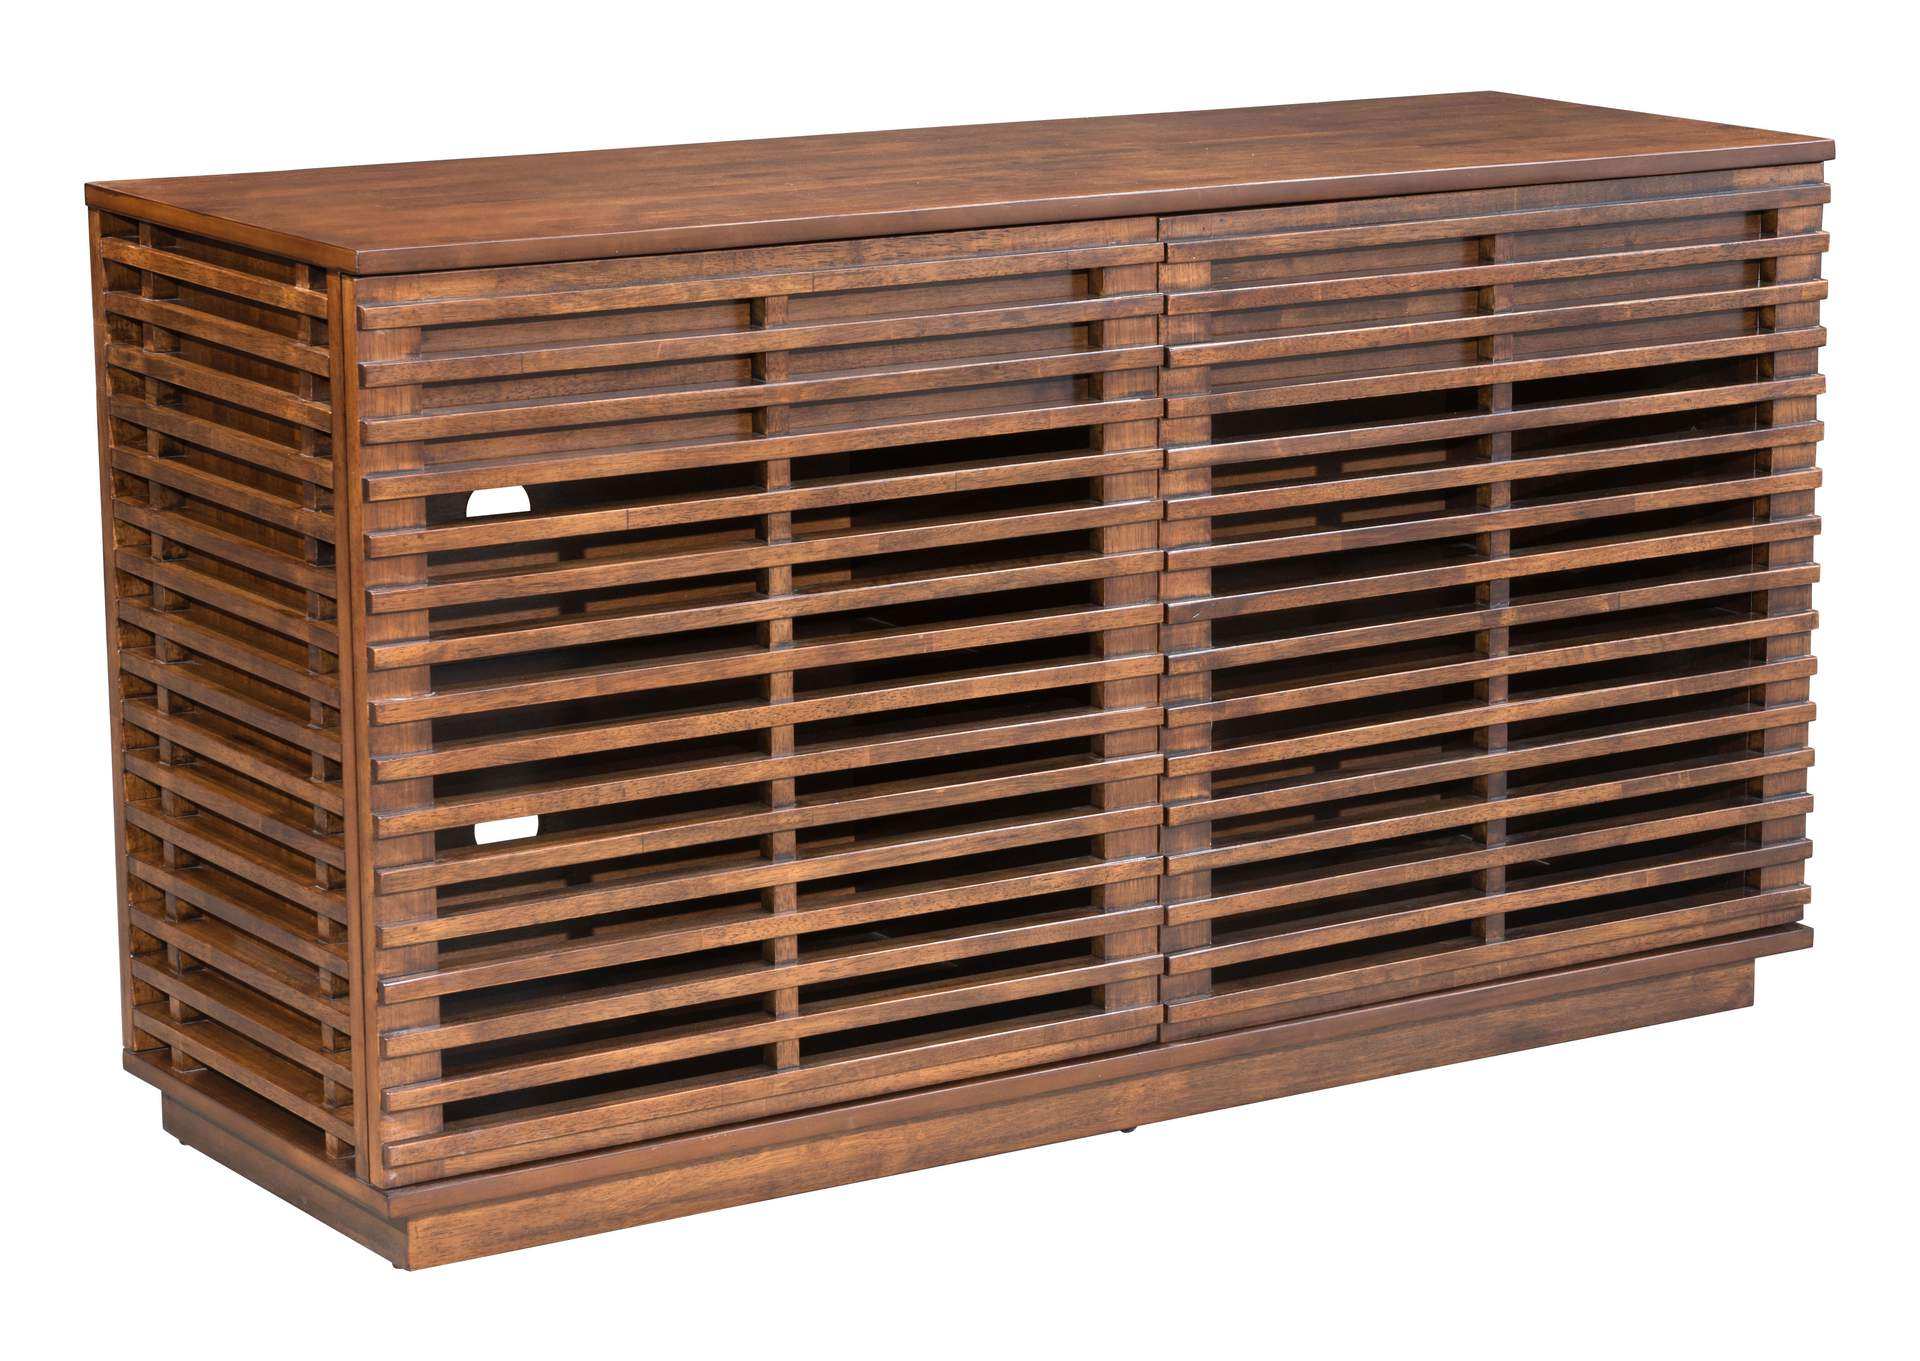 Luxury Home Furniture Linea Credenza on